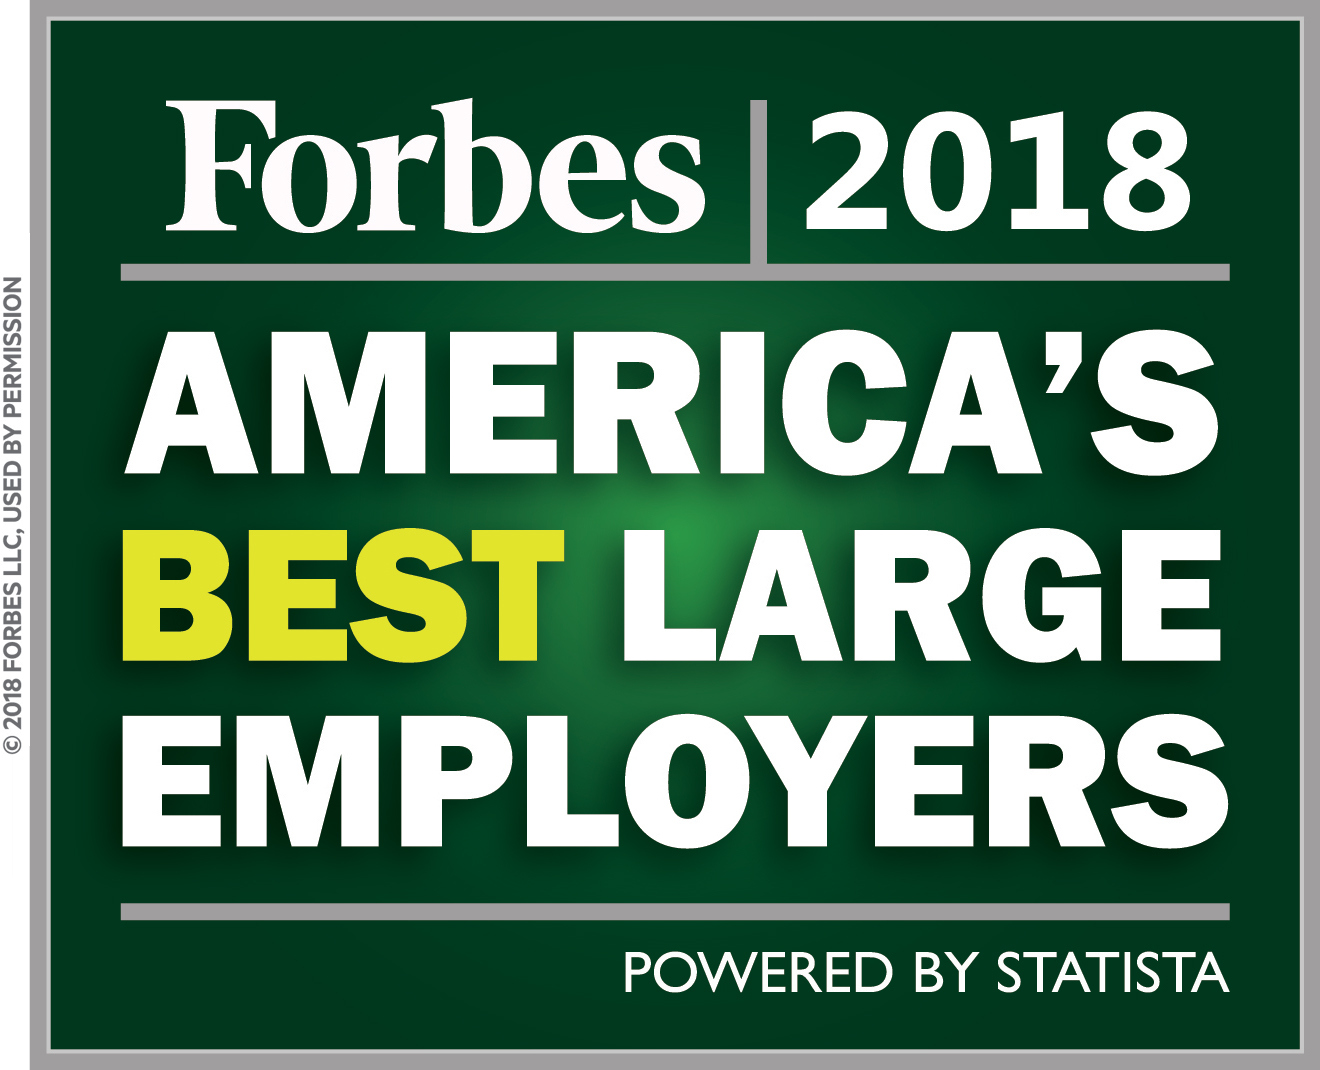 Forbes 2018 Award for America's Best Large Employers